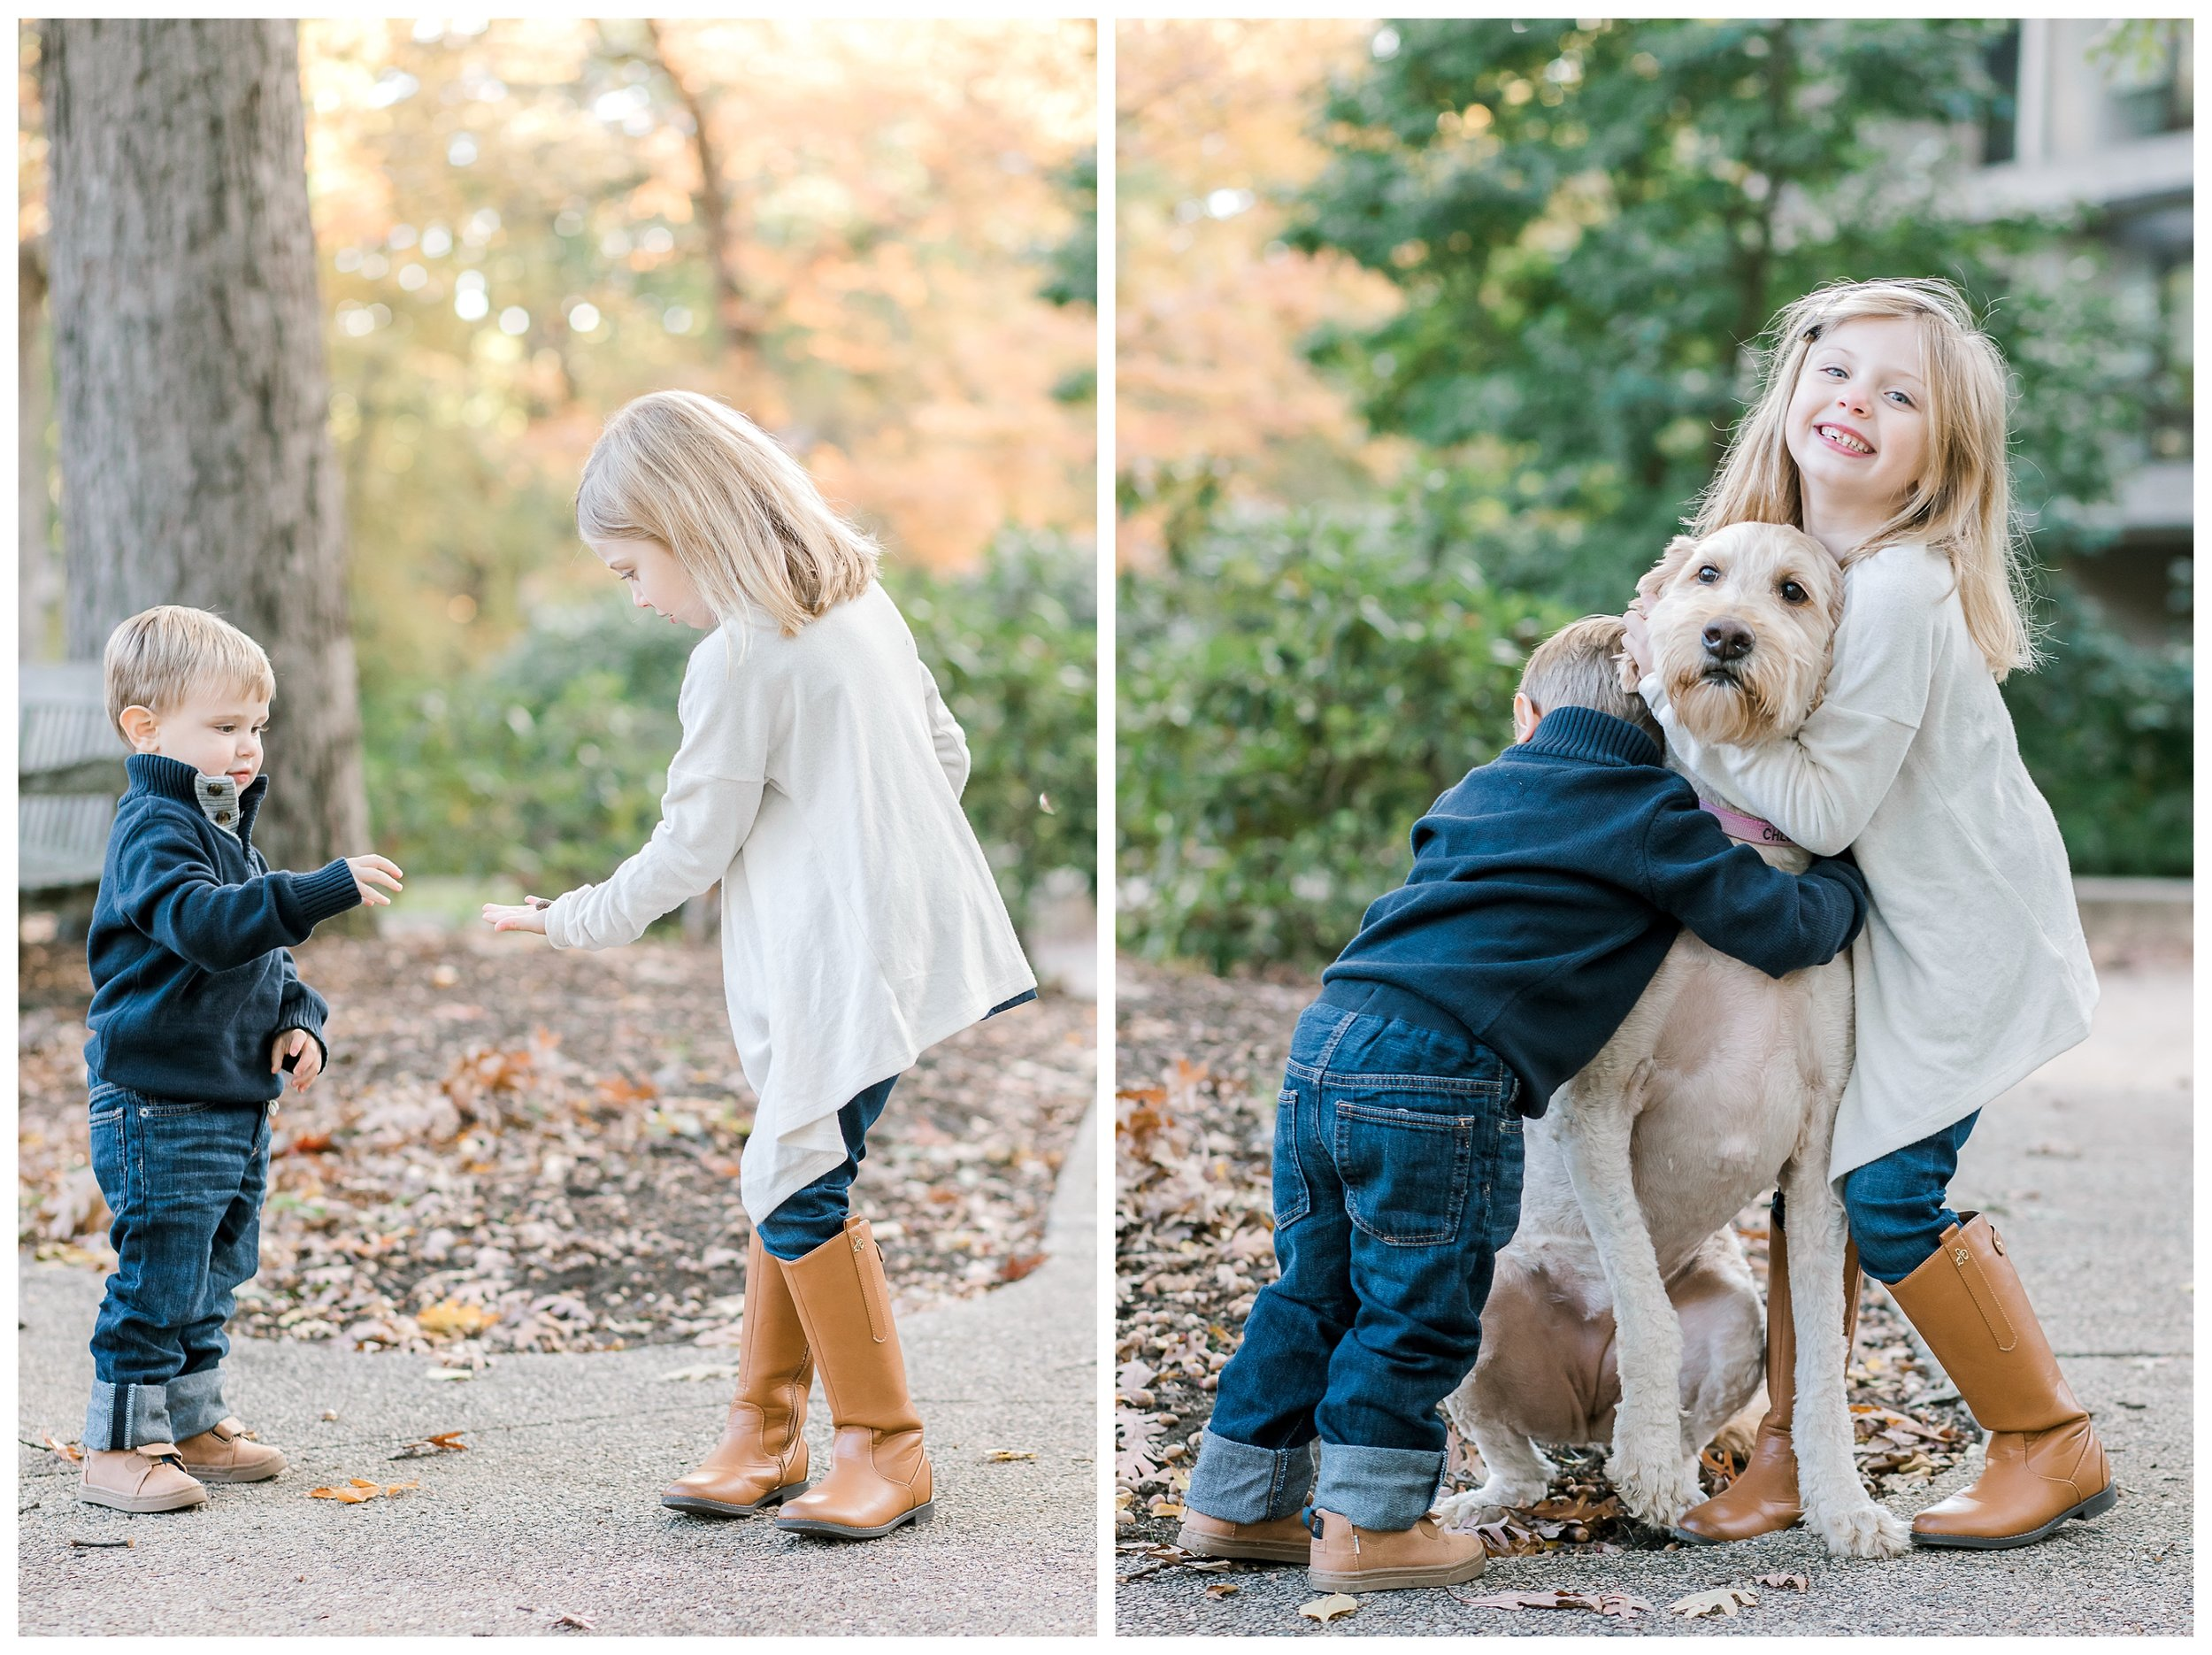 wellesley_college_fall_family_photos_erica_pezente_photography (6).jpg